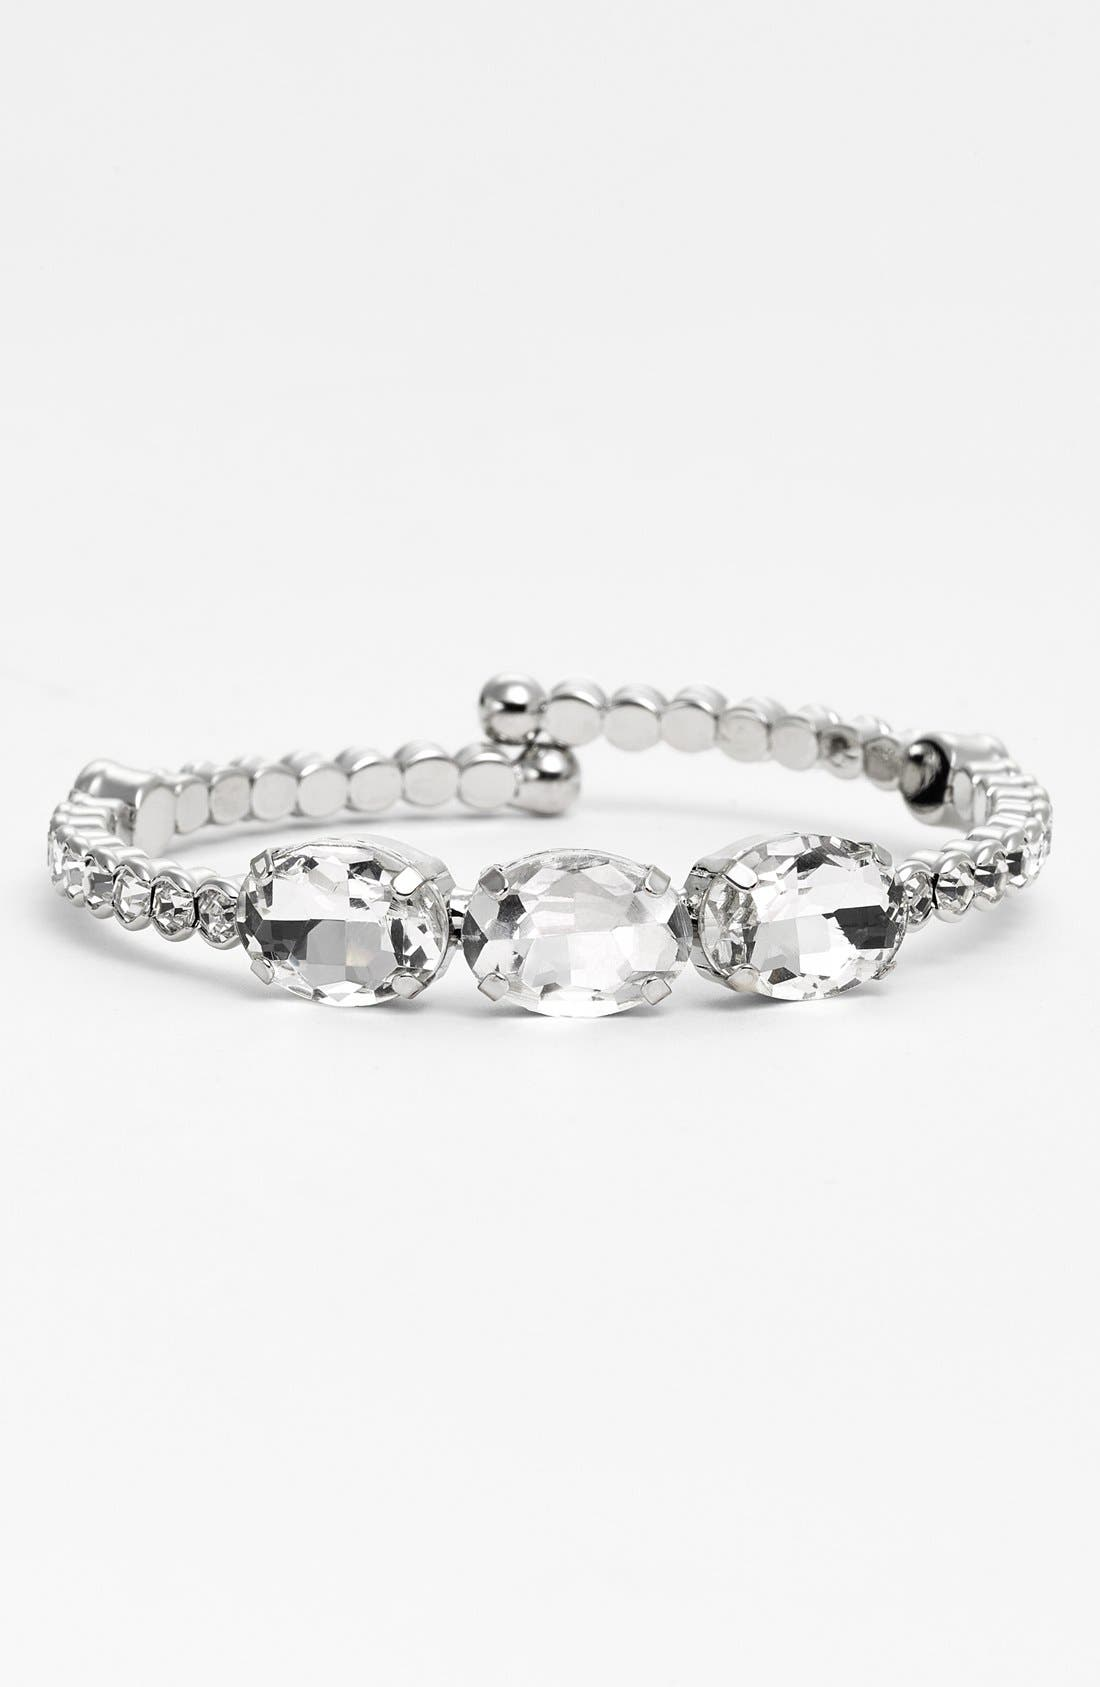 Main Image - Nordstrom 'Occasion' Crystal Cuff